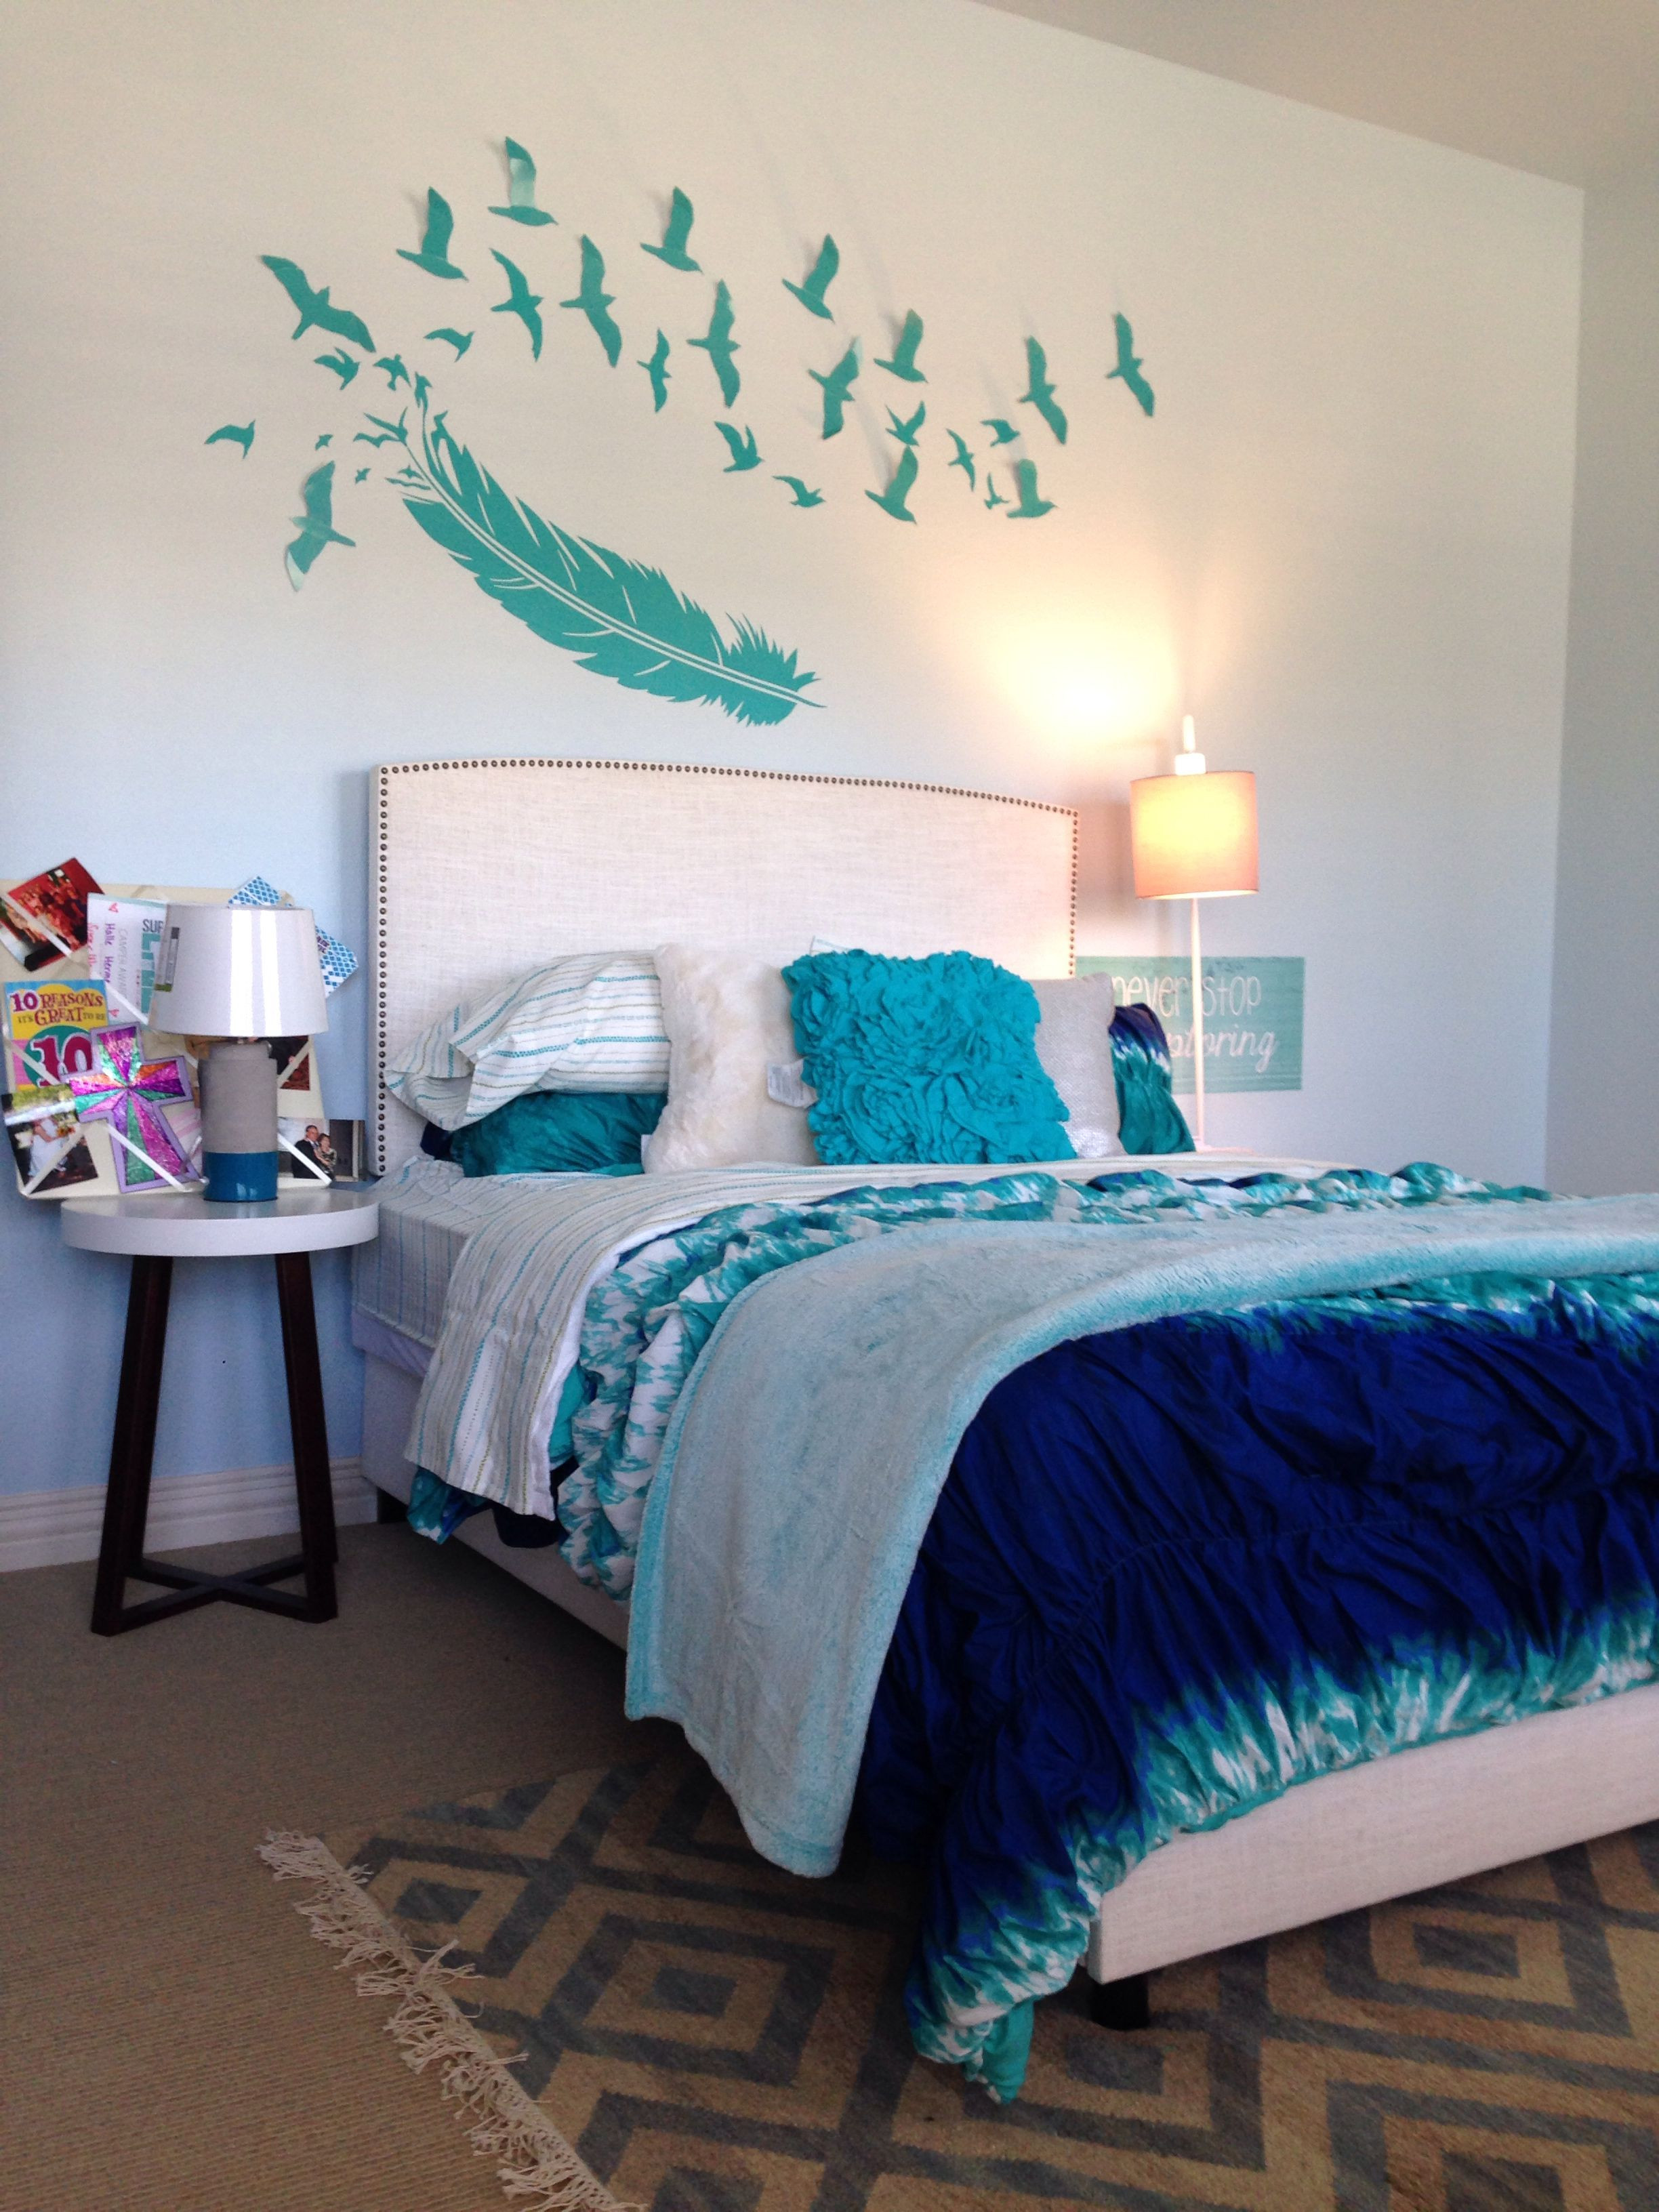 Best ideas about Room Decor Ideas For Tweens . Save or Pin Tween room update on a bud by Studio [b] Design Group Now.